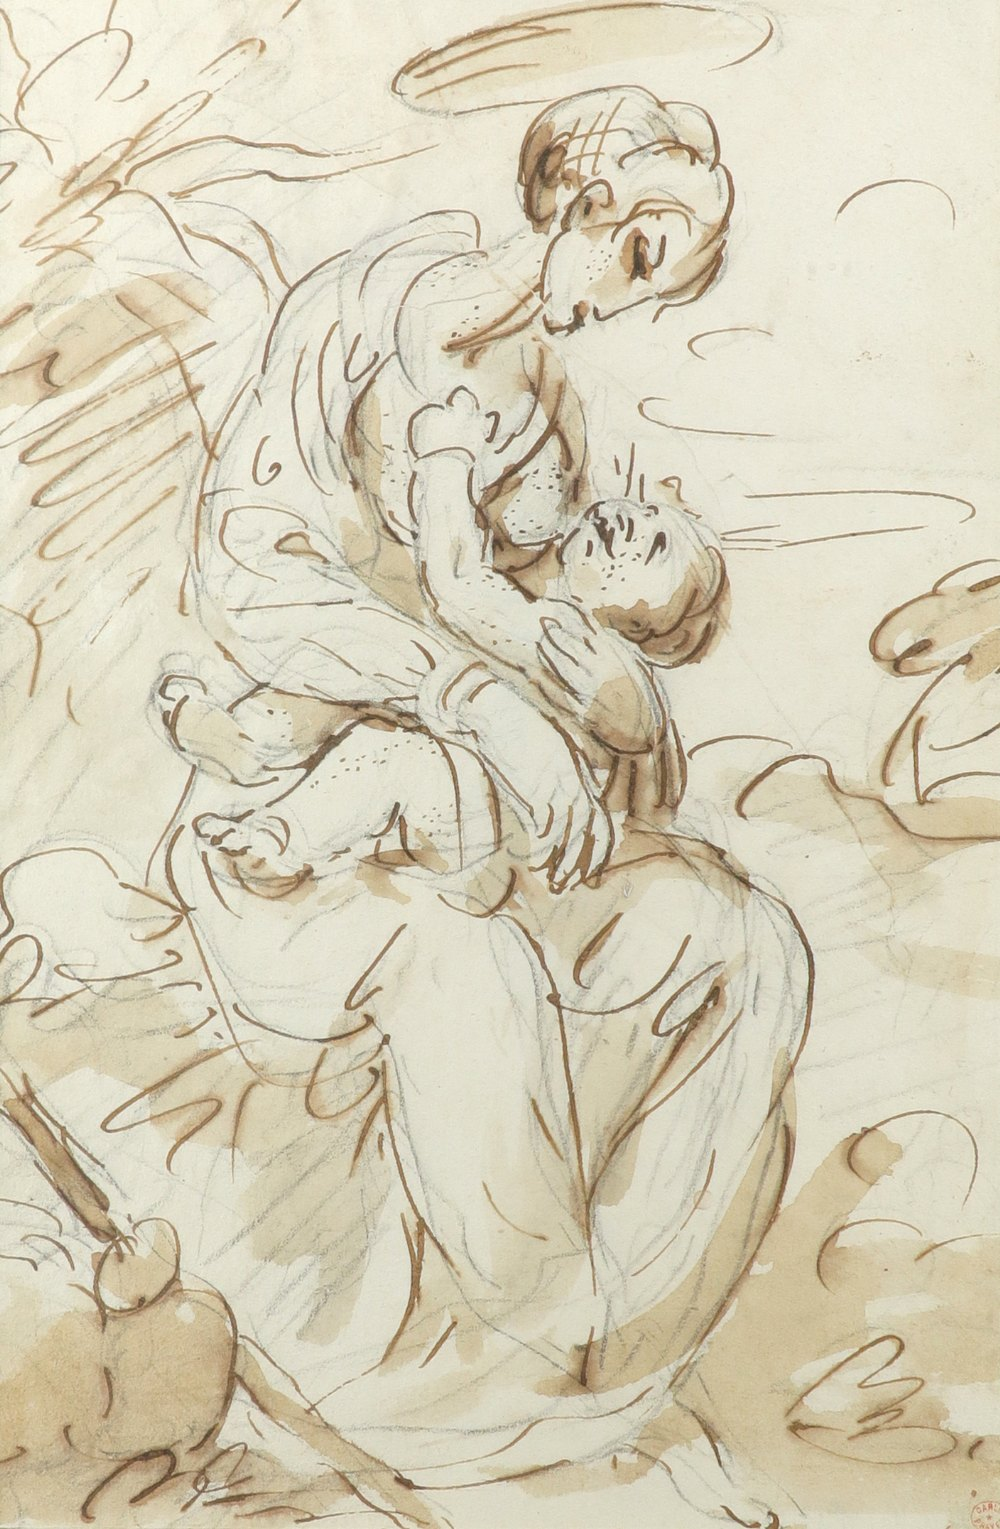 Francesco Appiani (Italian 1704-1792) Madonna and child Pen and brown ink, wash and black chalk 22.4